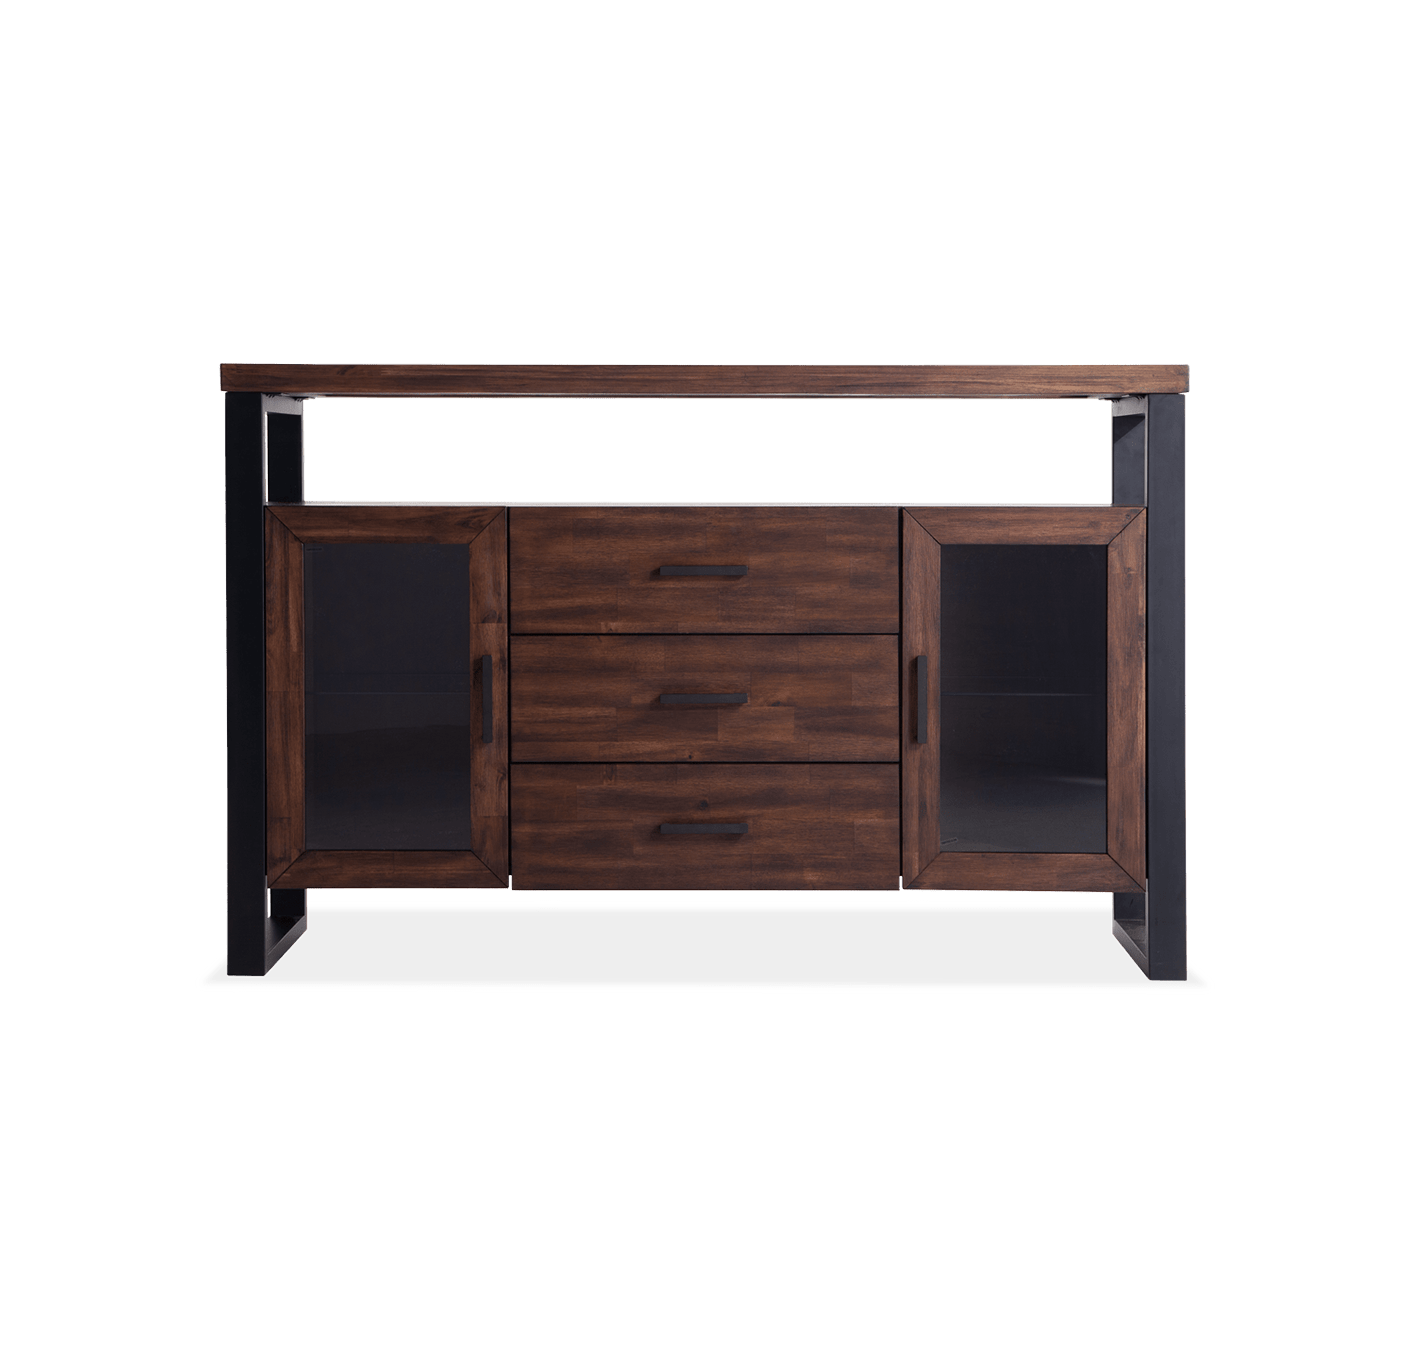 featured_product_Catalina Sideboard_wide.png